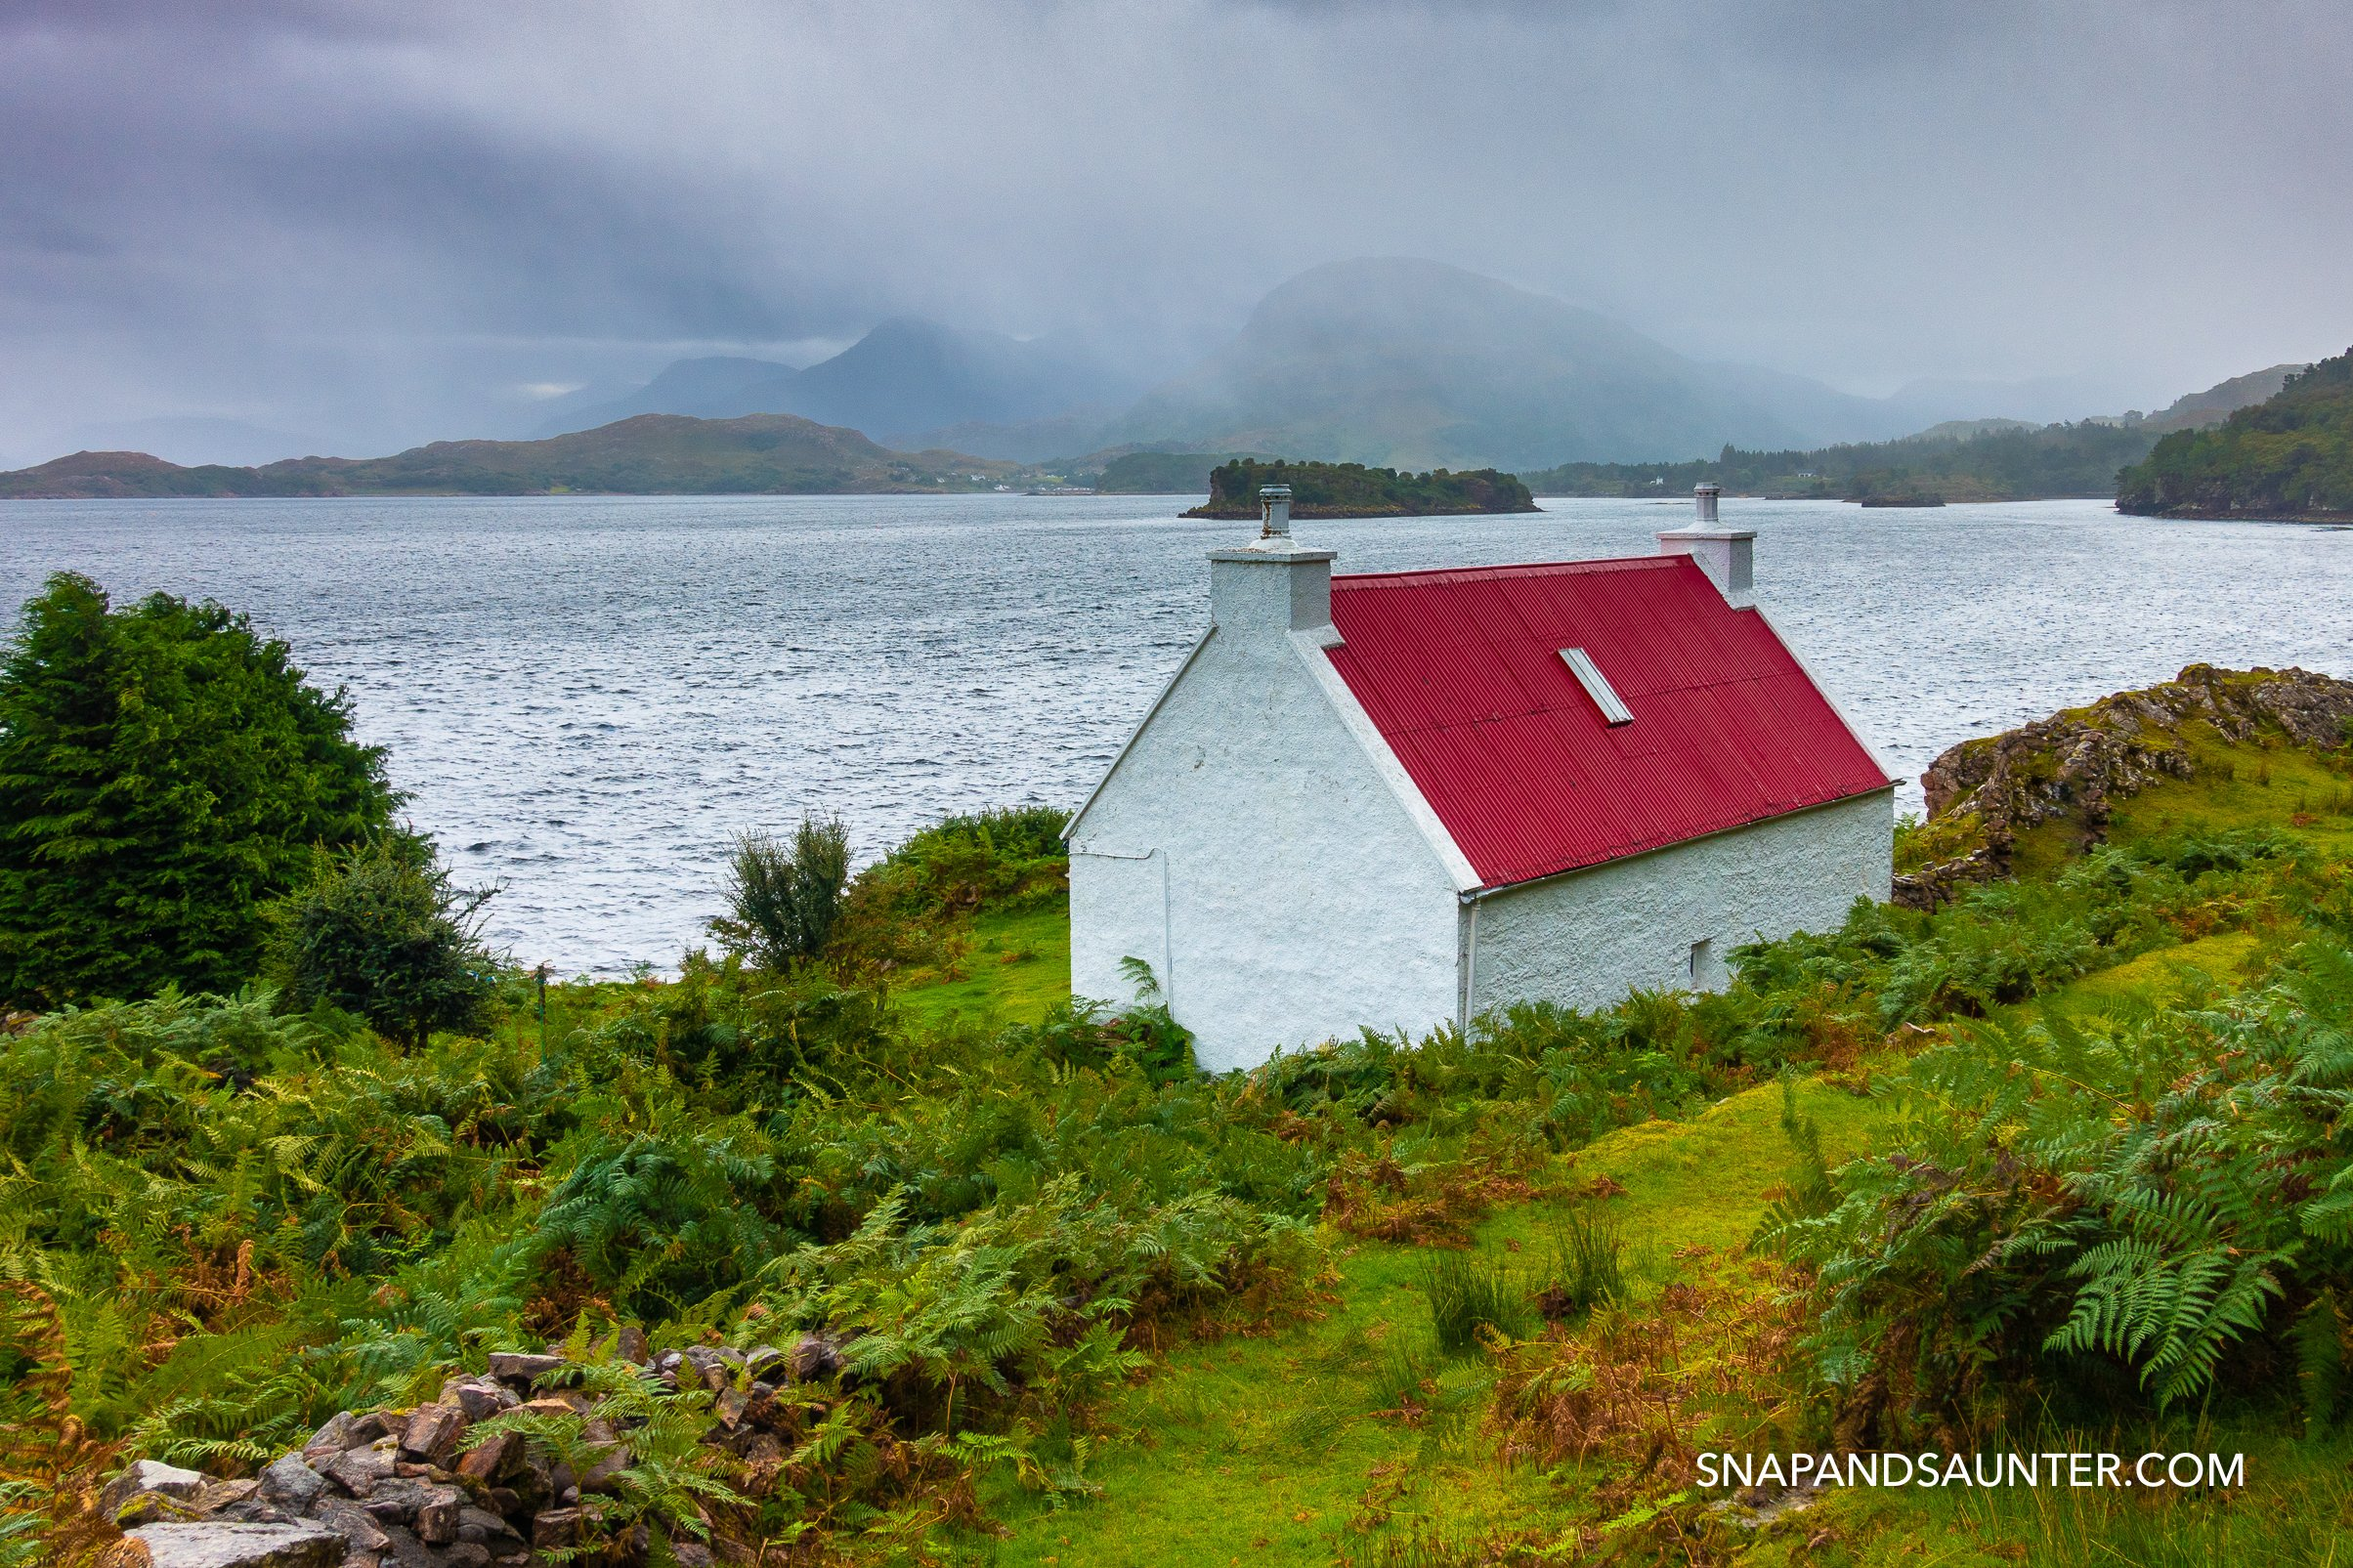 cottage with red roof in Shieldag with Loch Shieldag in background on route NC 500 route